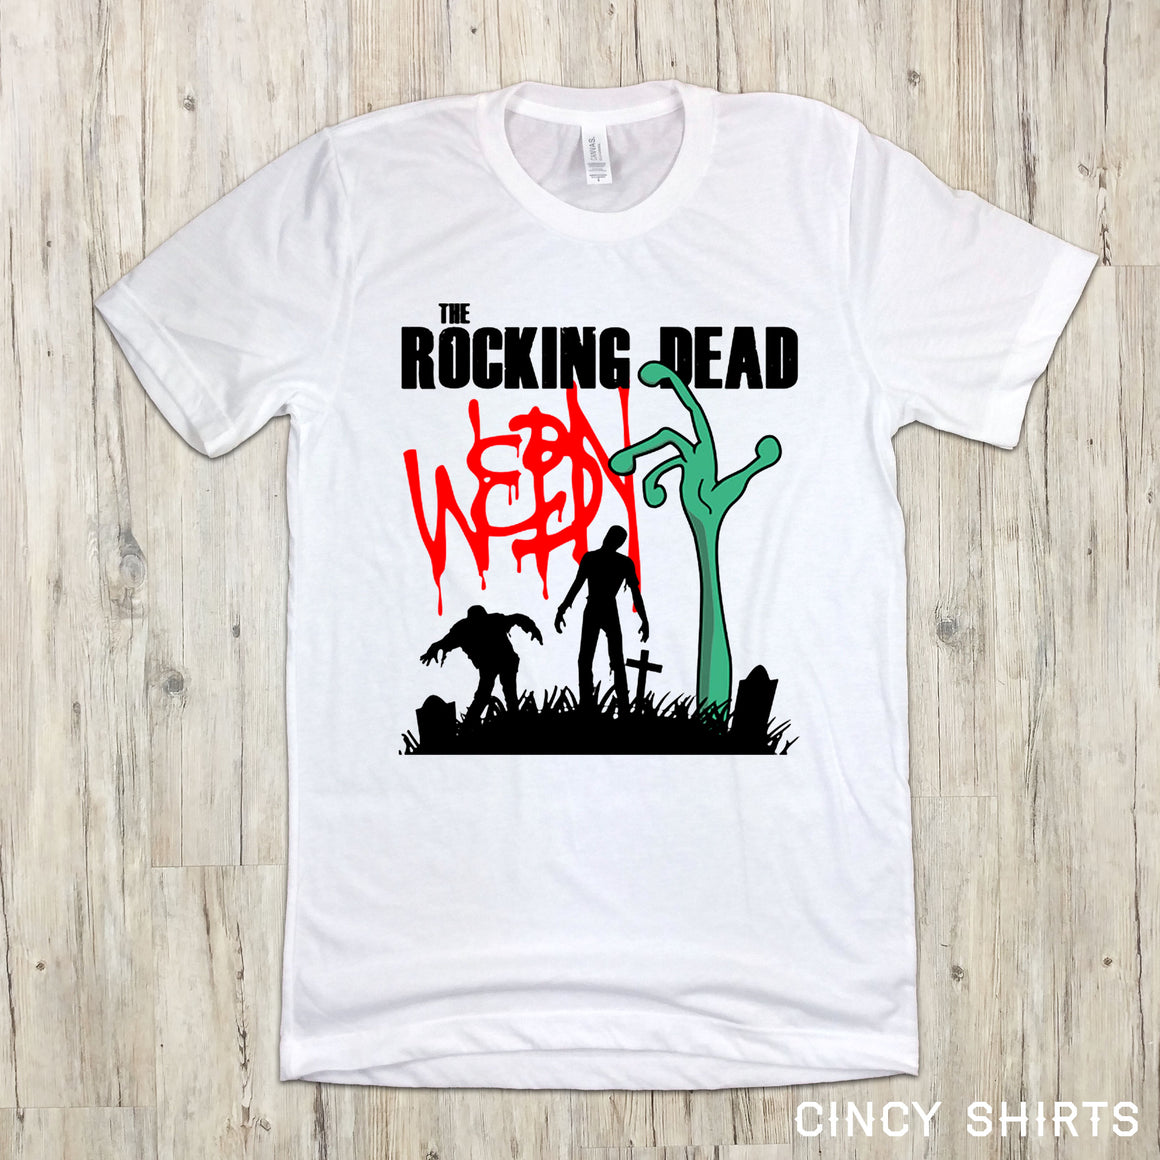 WEBN Rocking Dead - Cincy Shirts